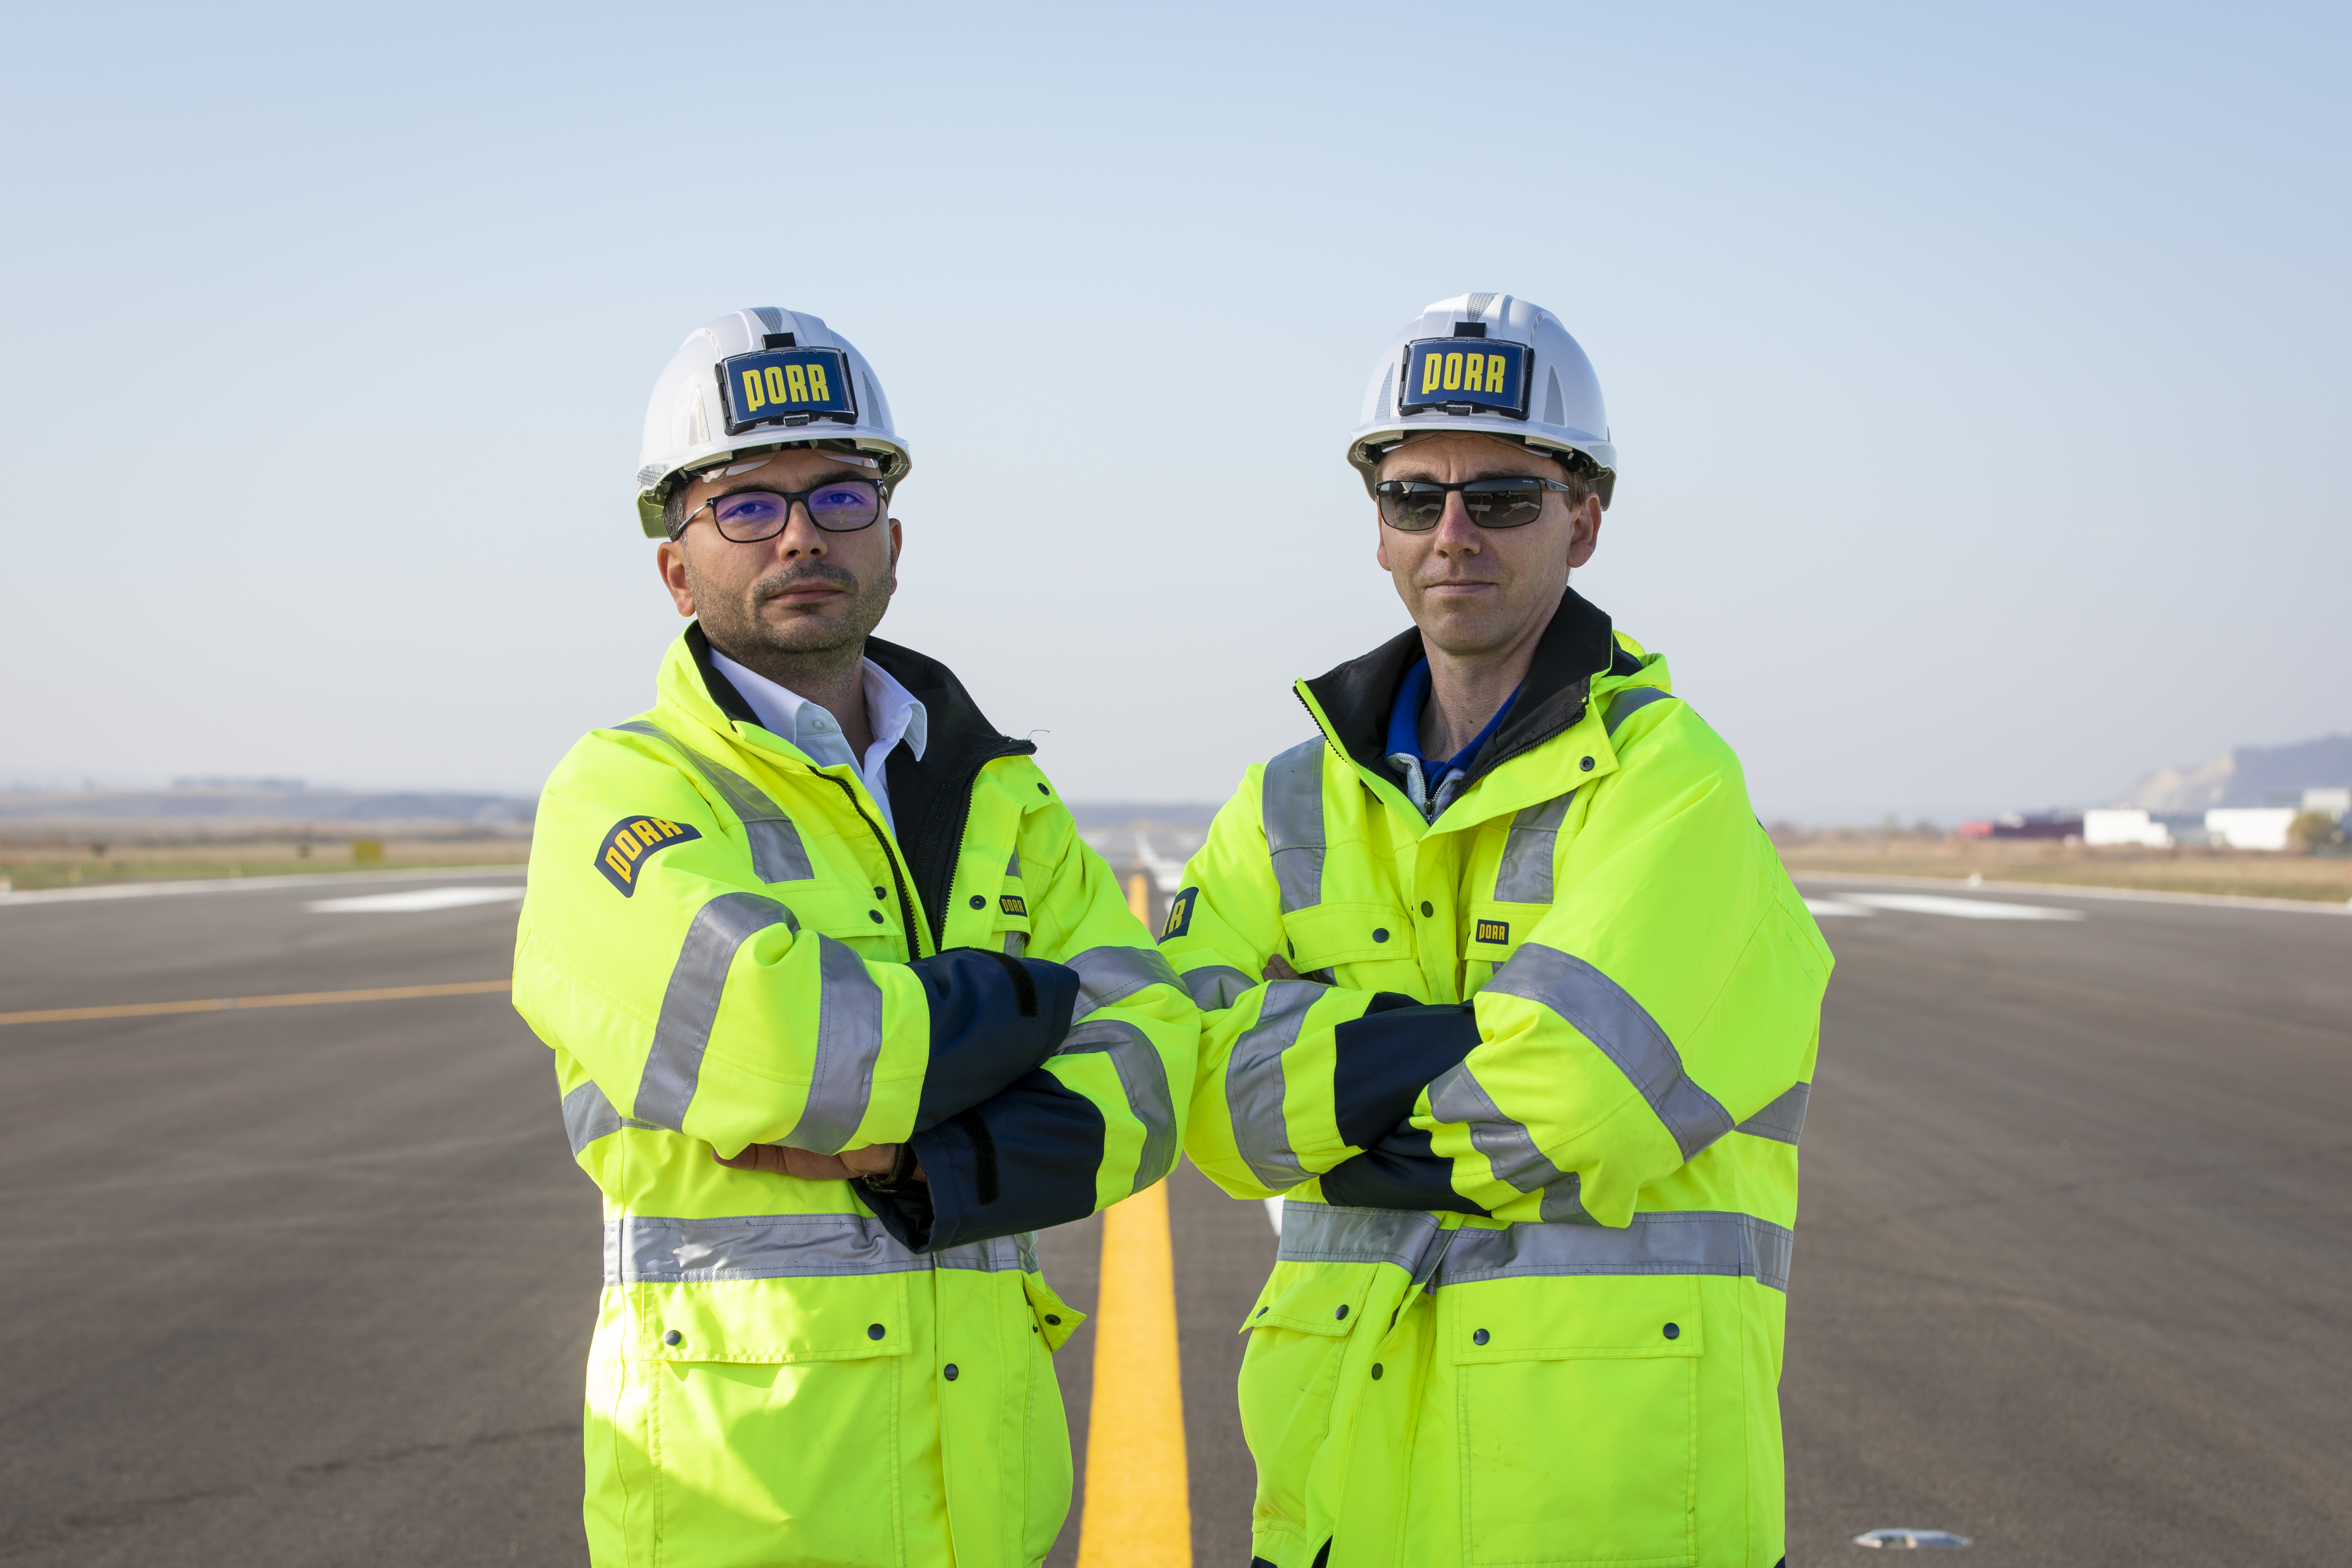 Photo: two men with work jackets and PORR helmets, one with glasses, the other with sunglasses, standing on an airport runway, looking towards the camera with arms confidently crossed